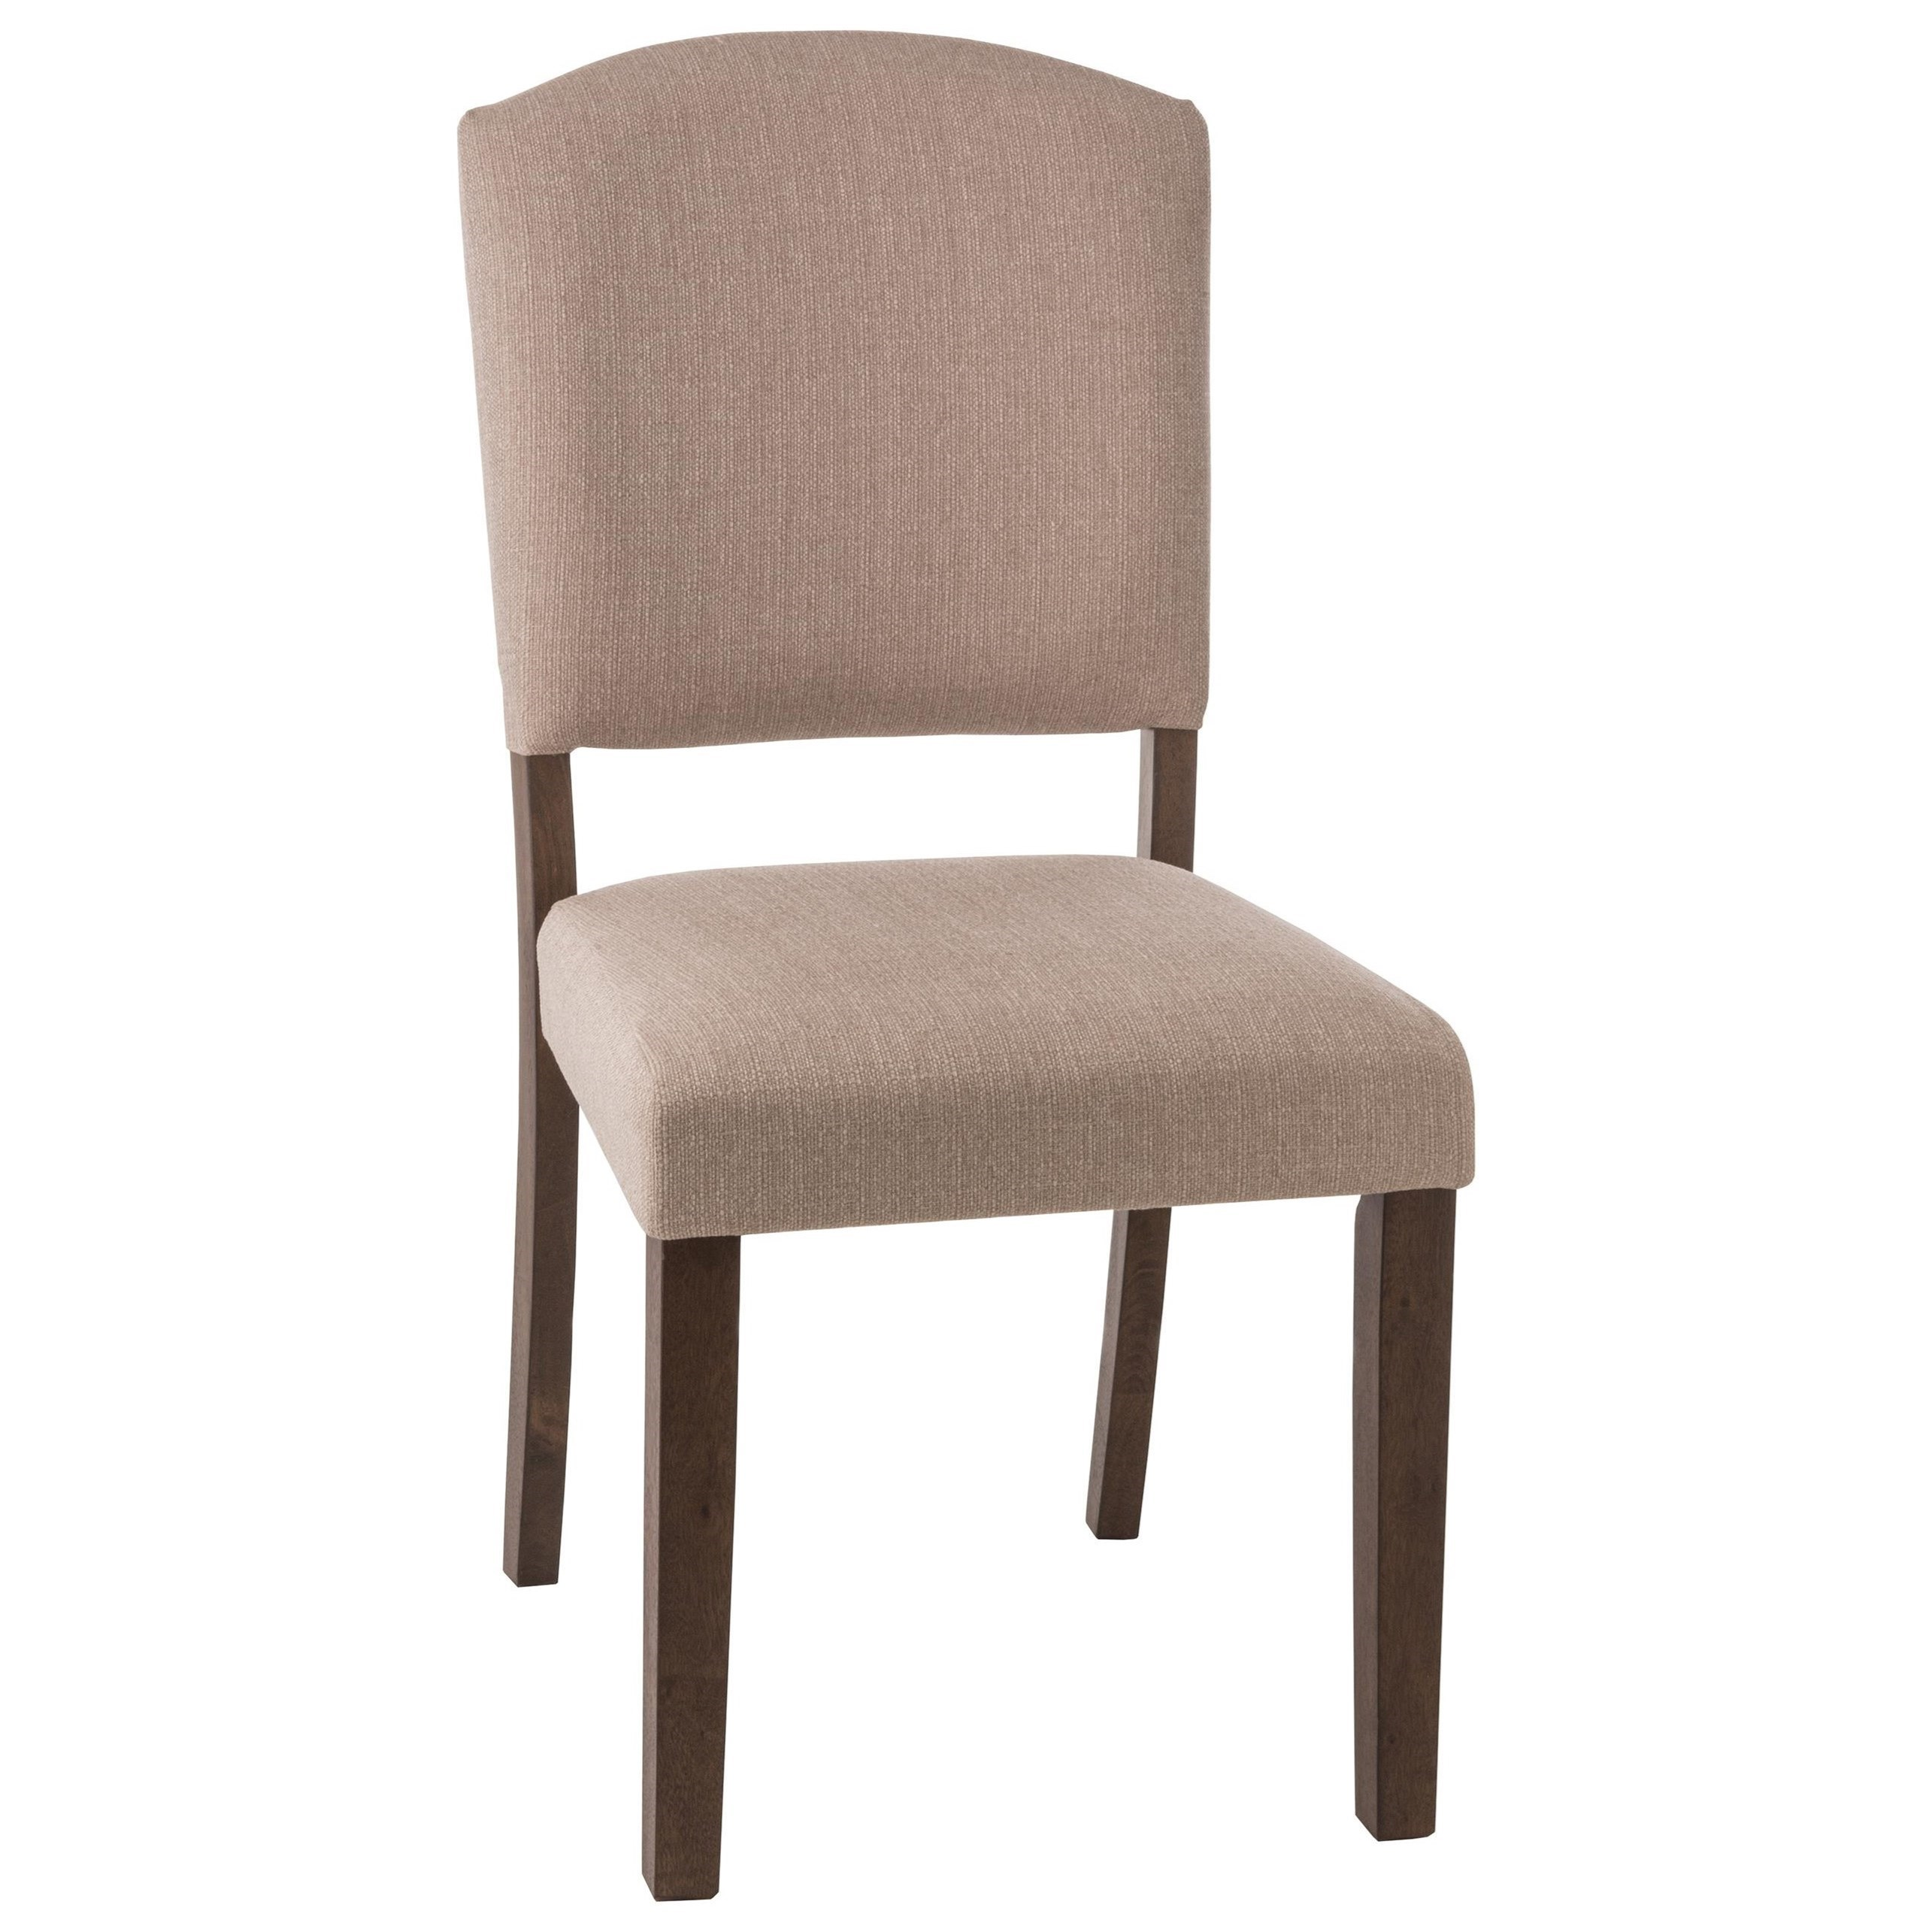 Hillsdale Emerson  Parson Dining Chair - Item Number: 5674-802